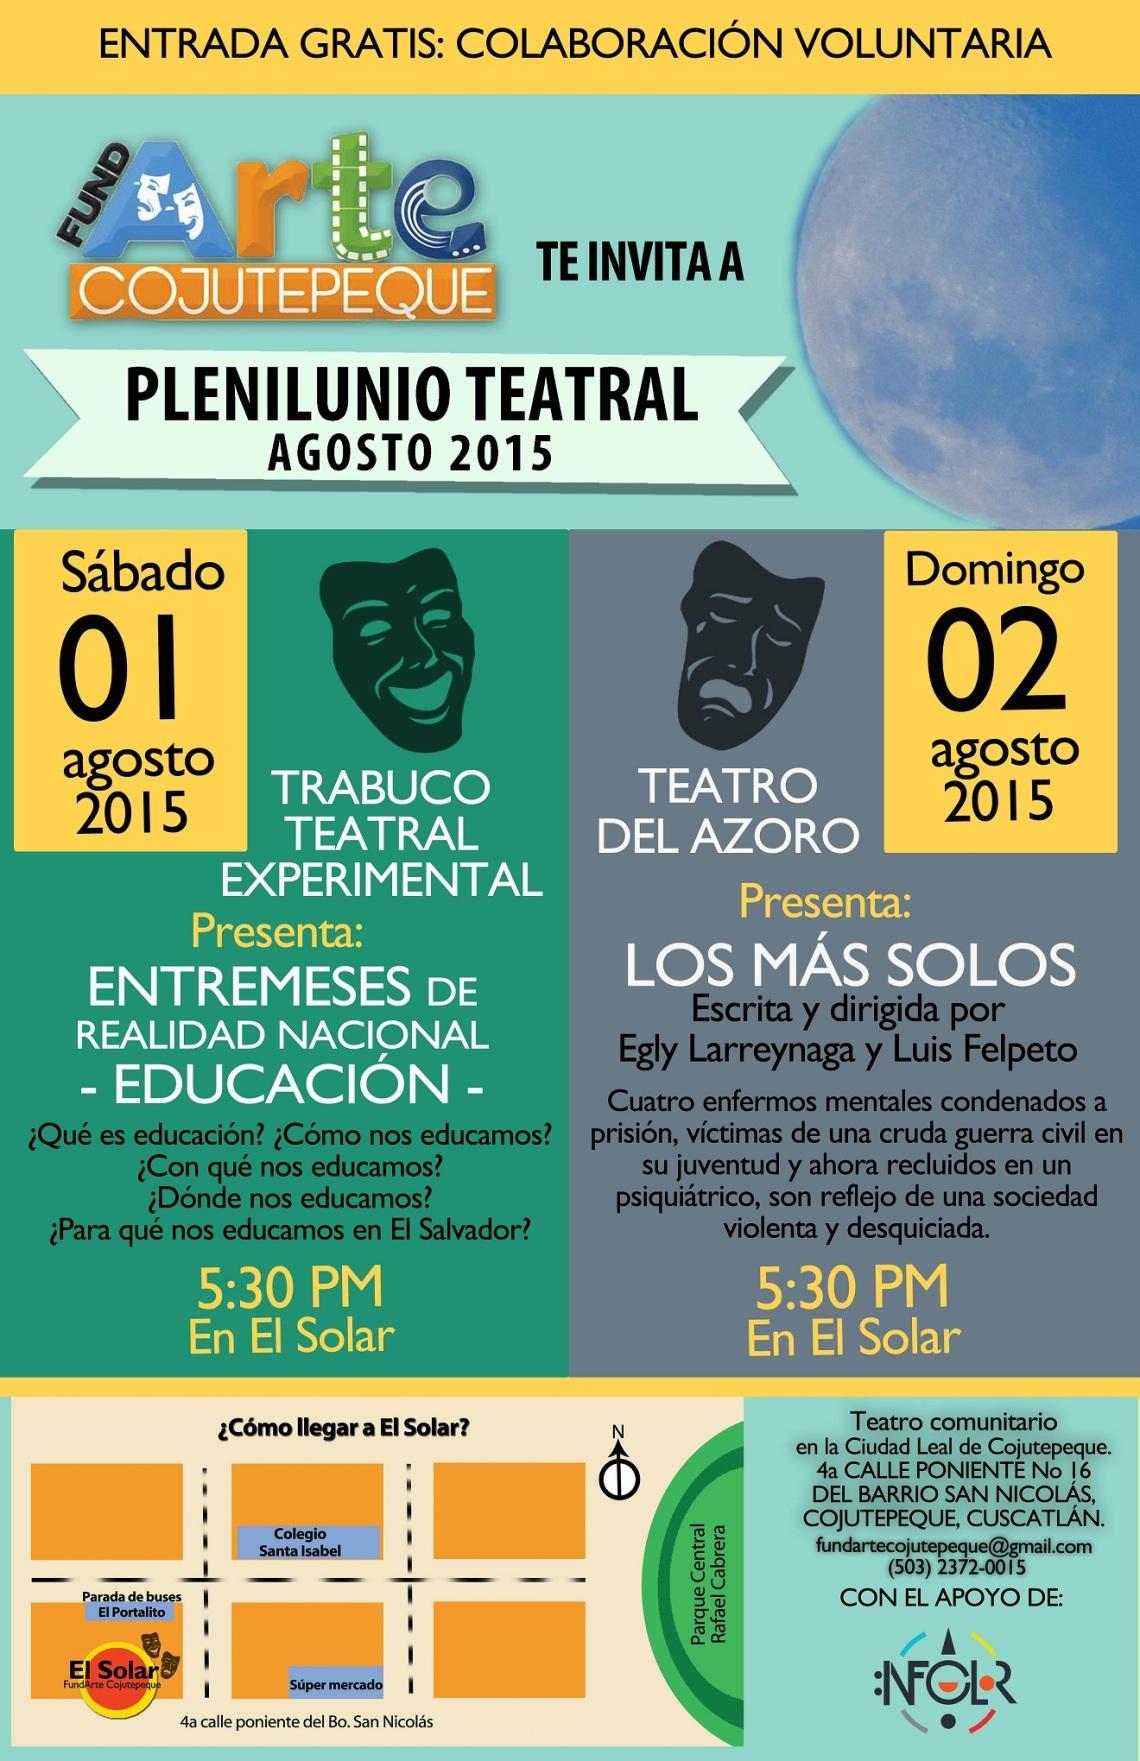 Plenilunio teatral